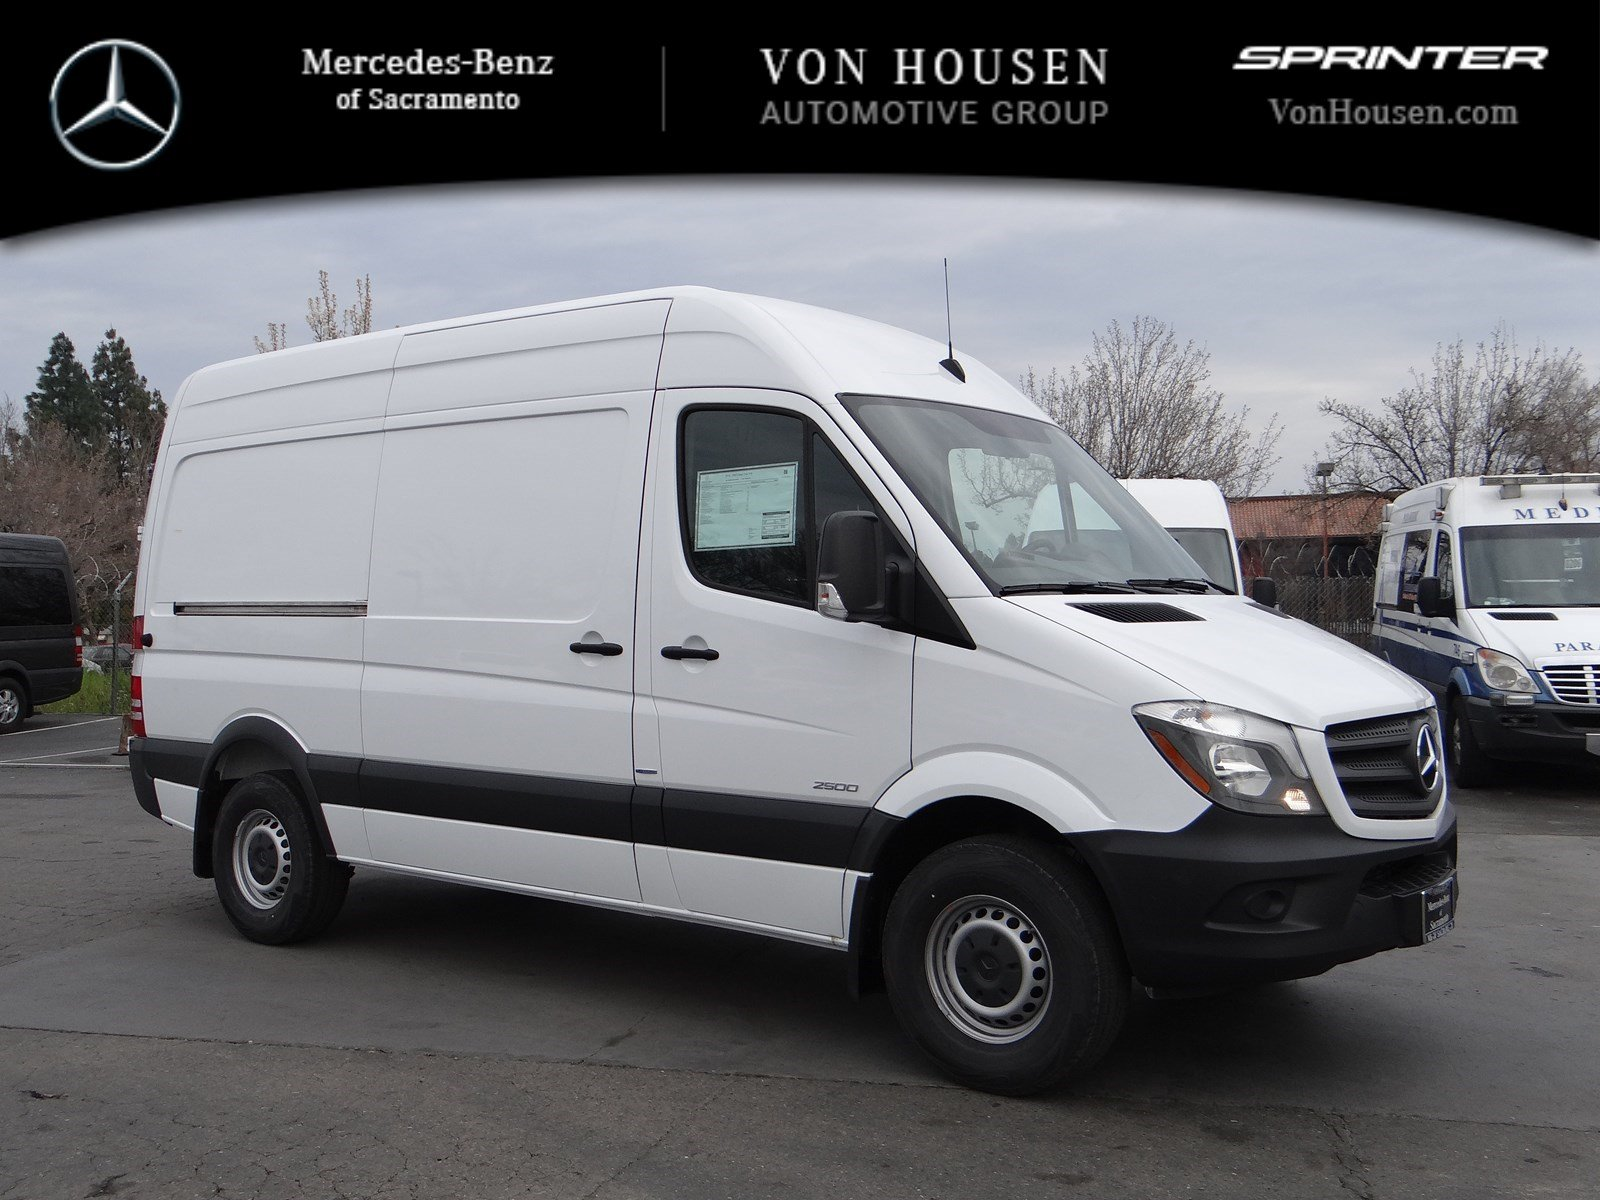 New 2016 mercedes benz sprinter cargo van m2ca144 full for Mercedes benz service sacramento